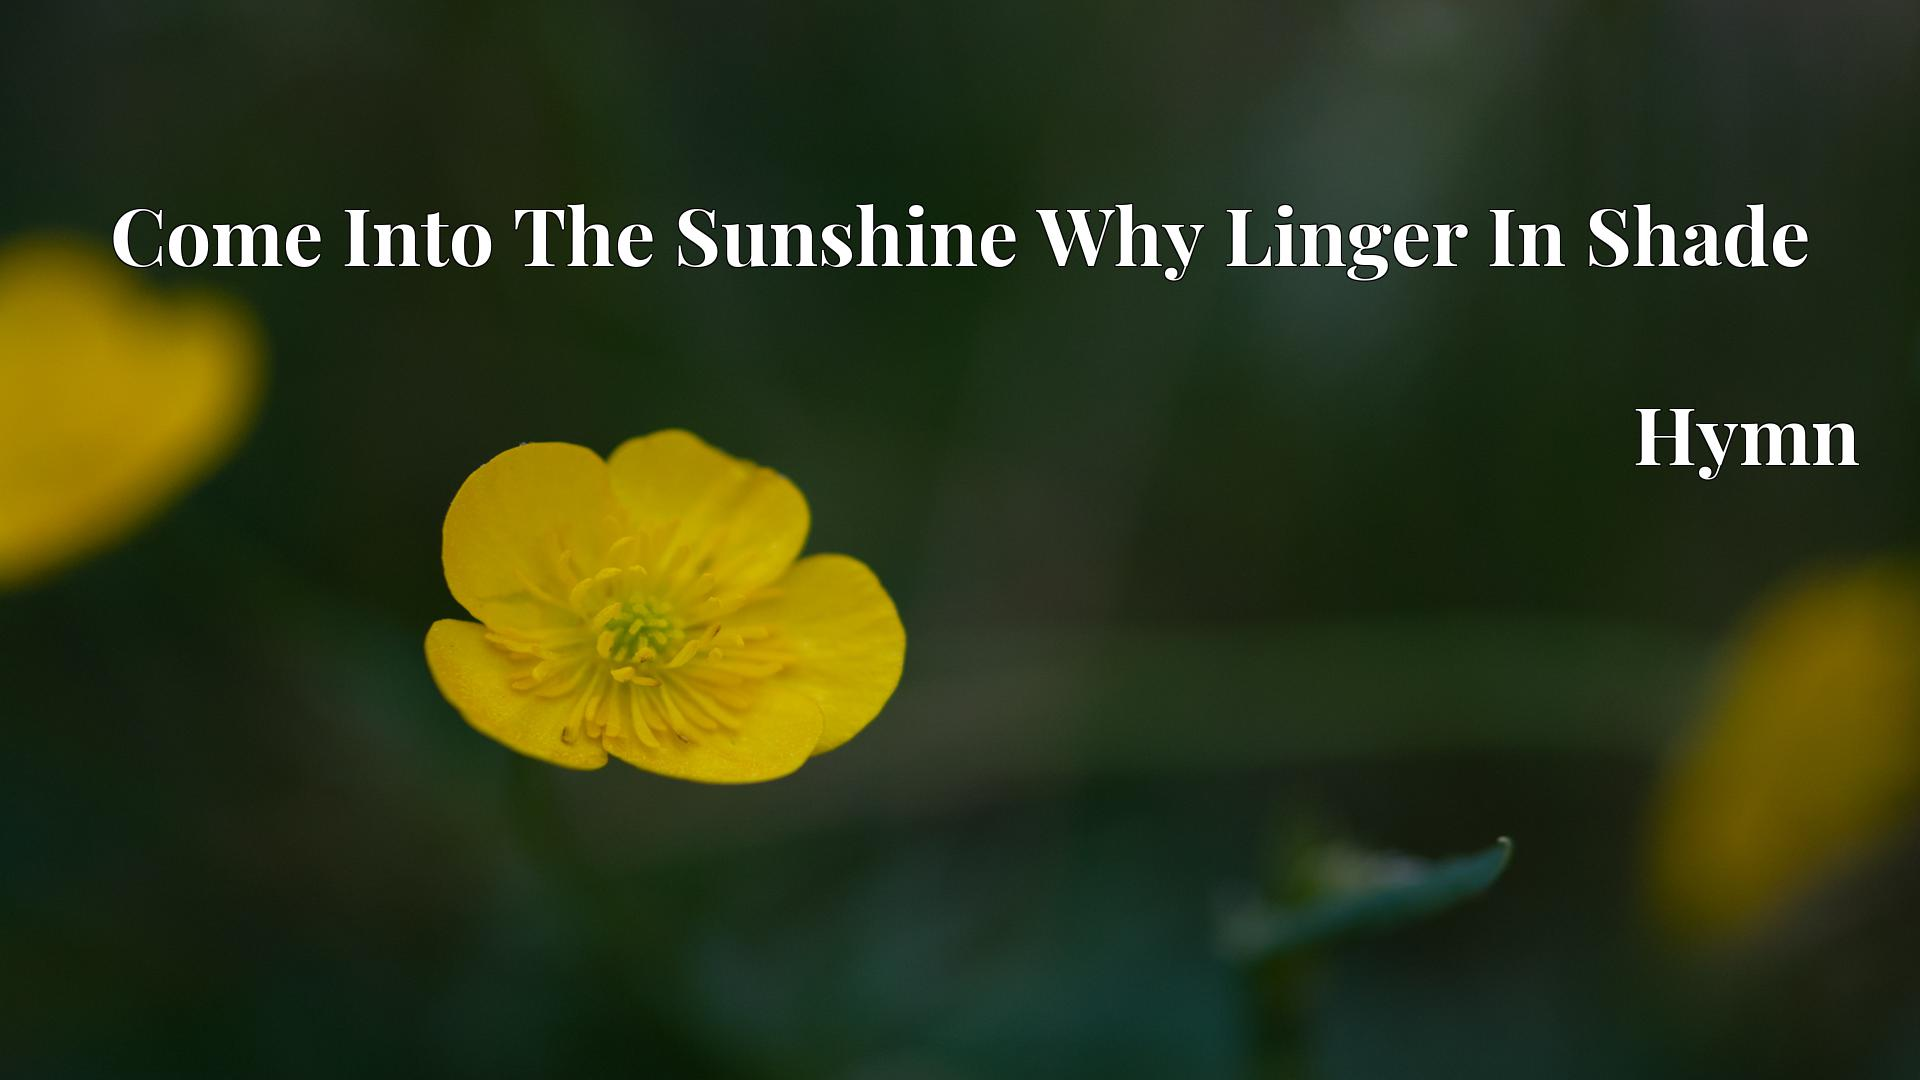 Come Into The Sunshine Why Linger In Shade - Hymn